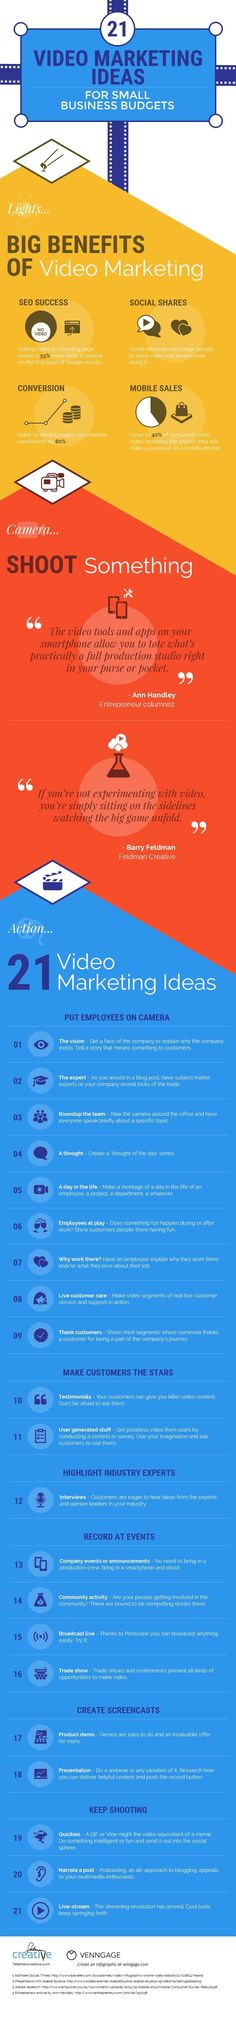 Nice little infographic here listing different use cases for video marketing.